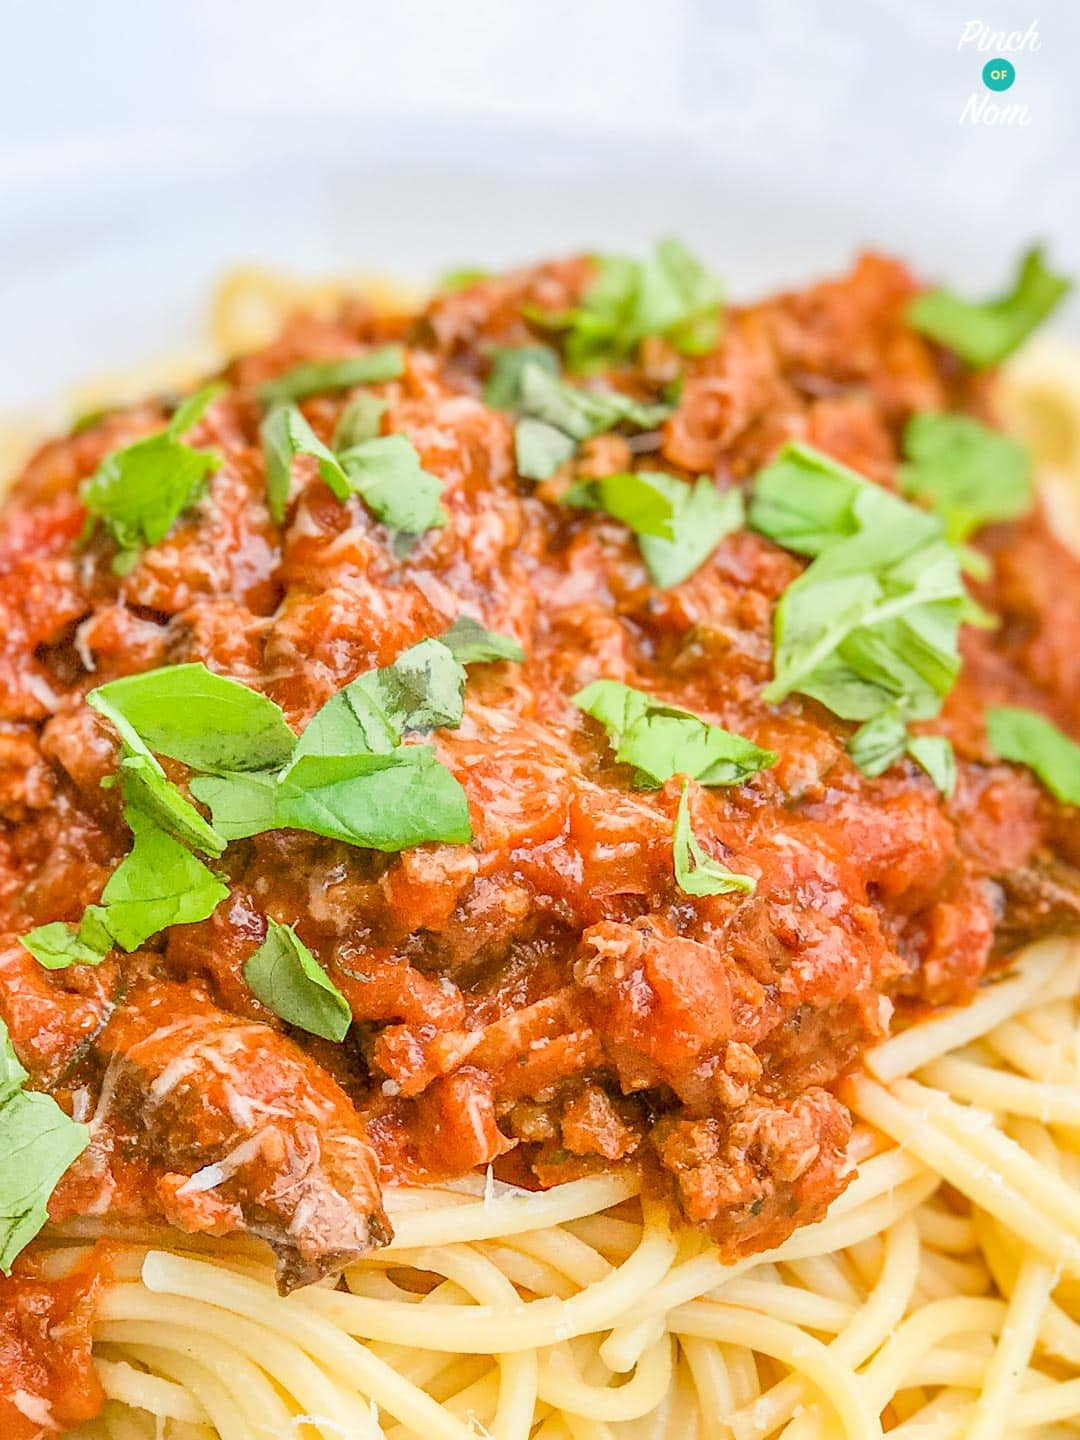 Spaghetti Bolognese | Slimming World & Weight Watchers Friendly